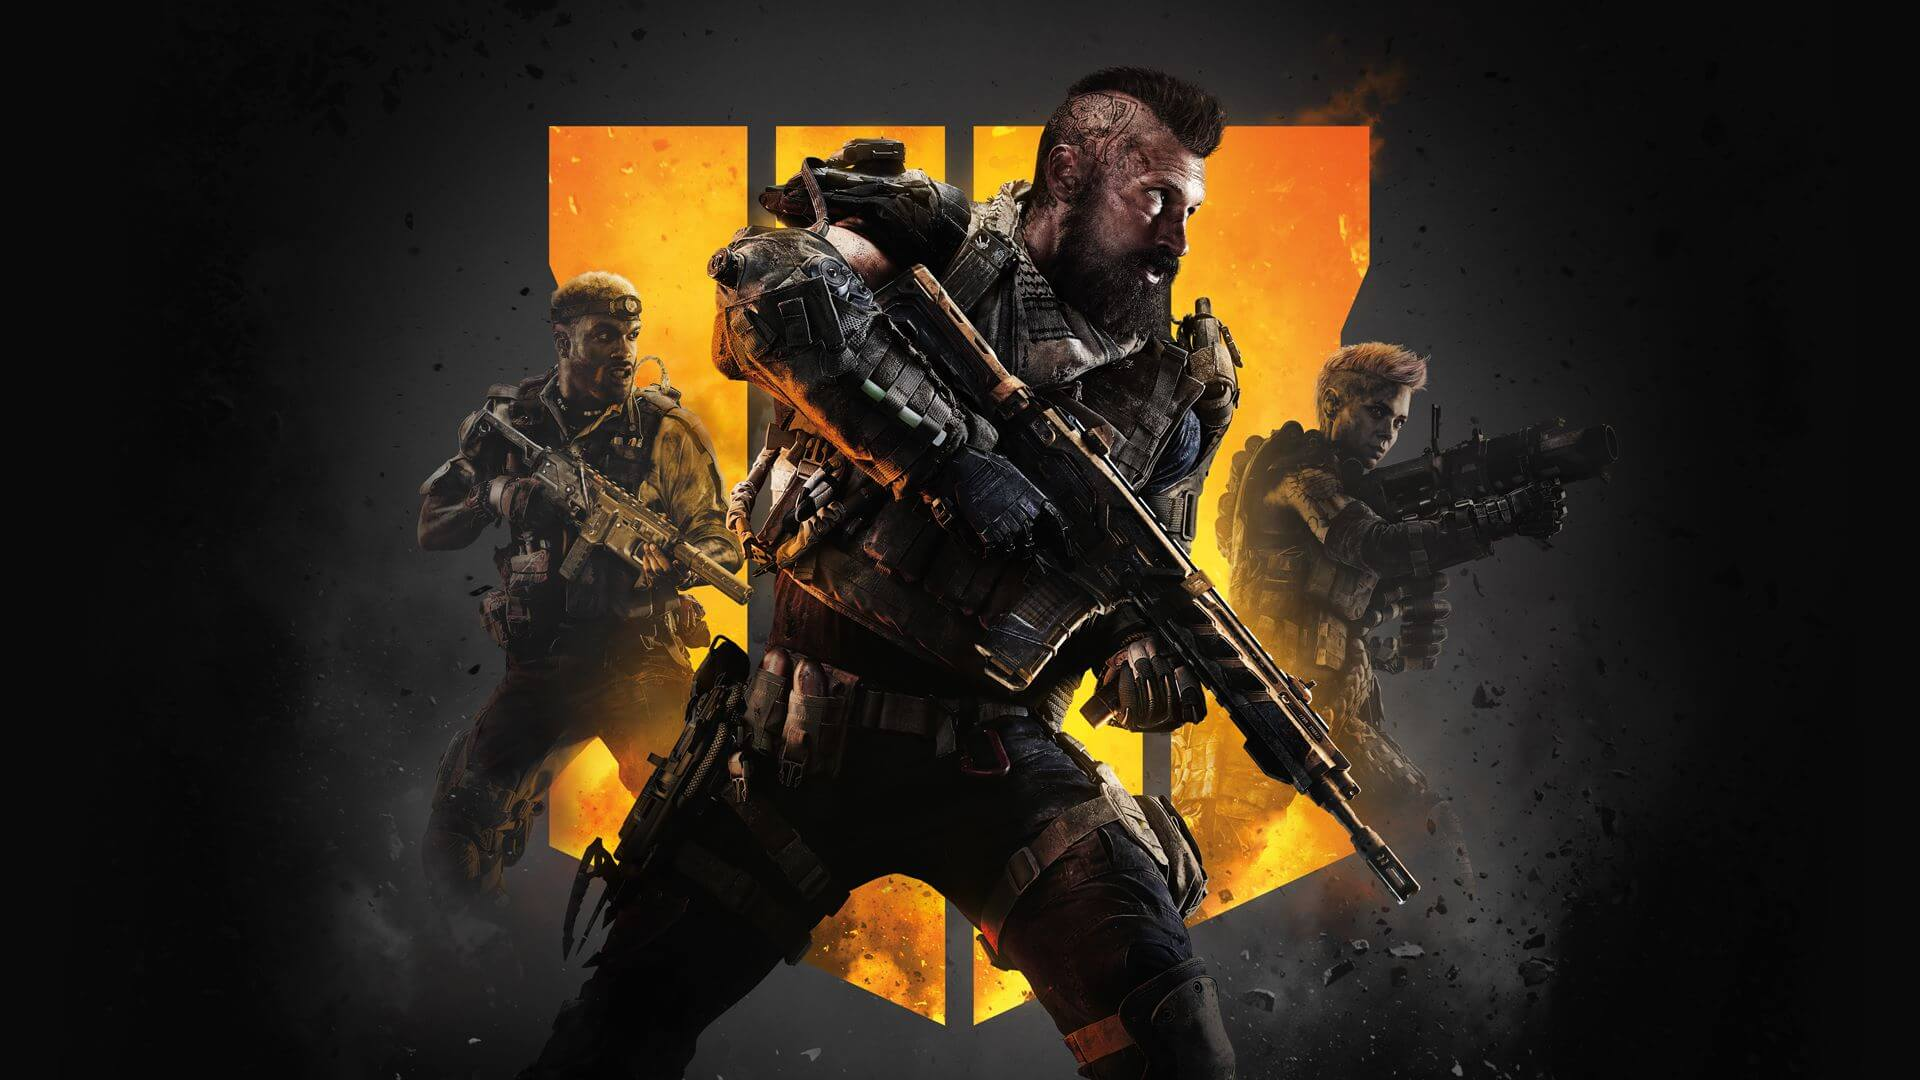 Treyarch reveals two more maps for Call of Duty : Black Ops 4